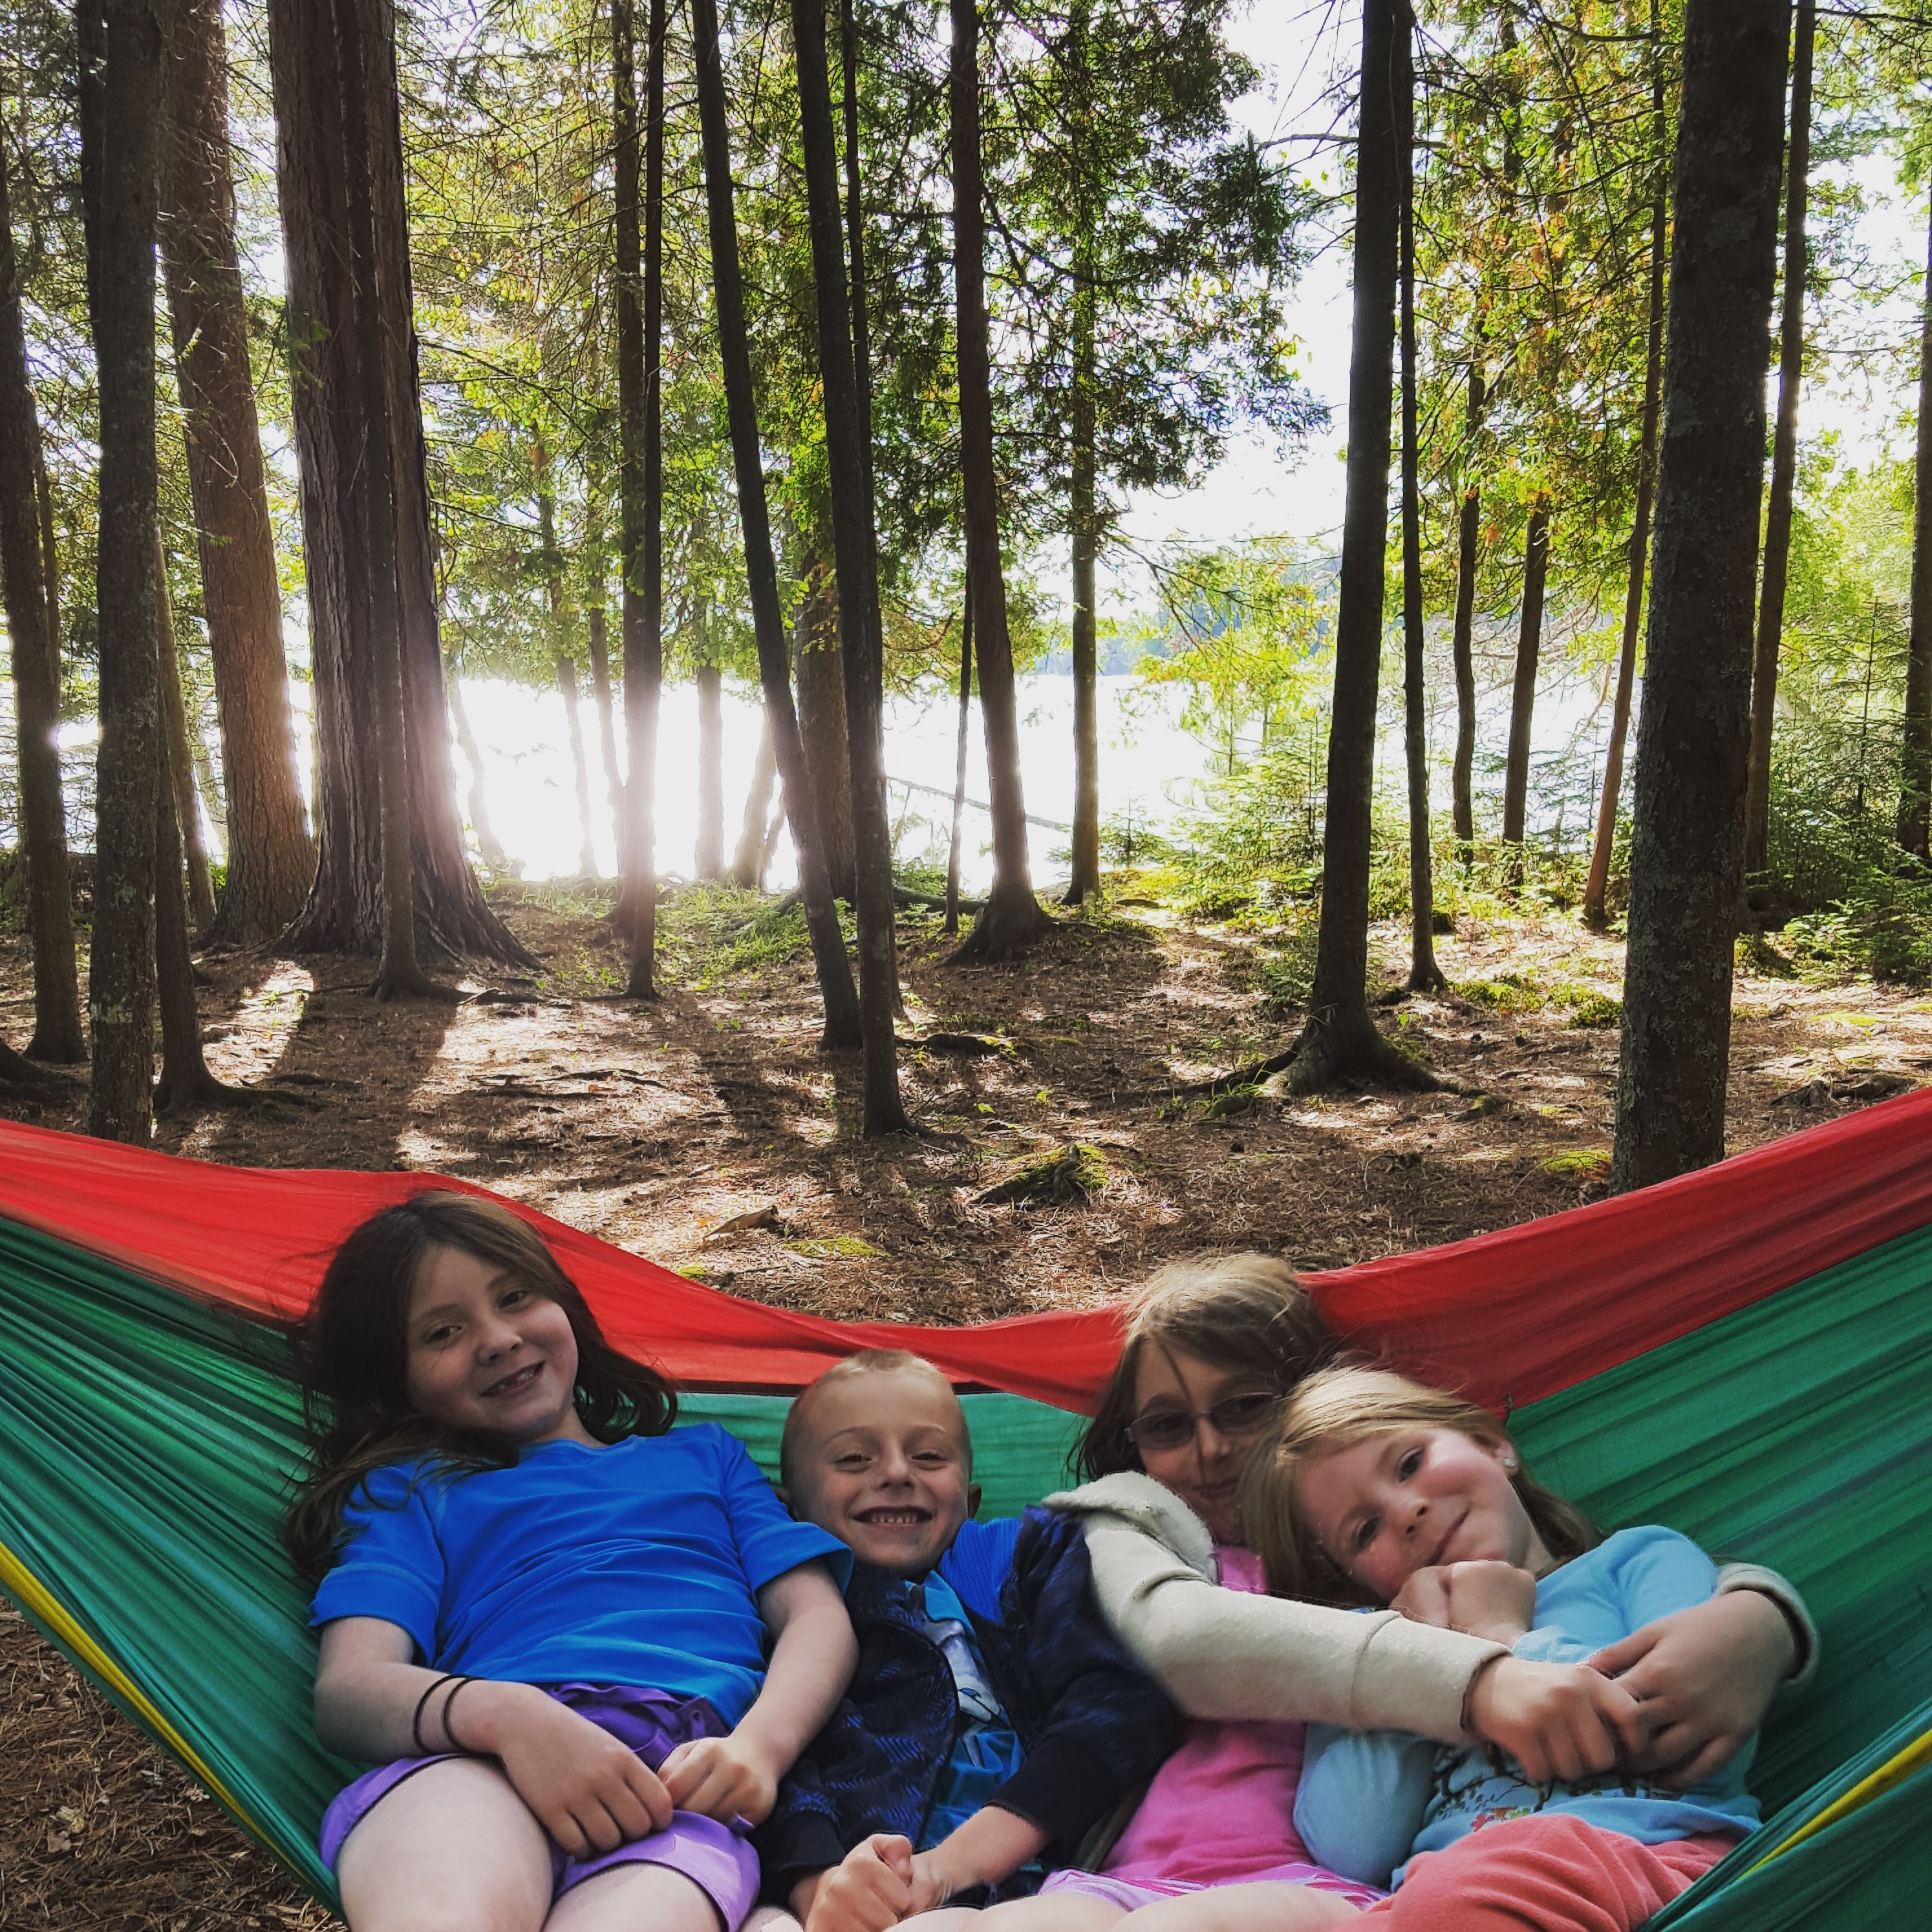 Beginner's Guide to Camping in Lily Bay State Park